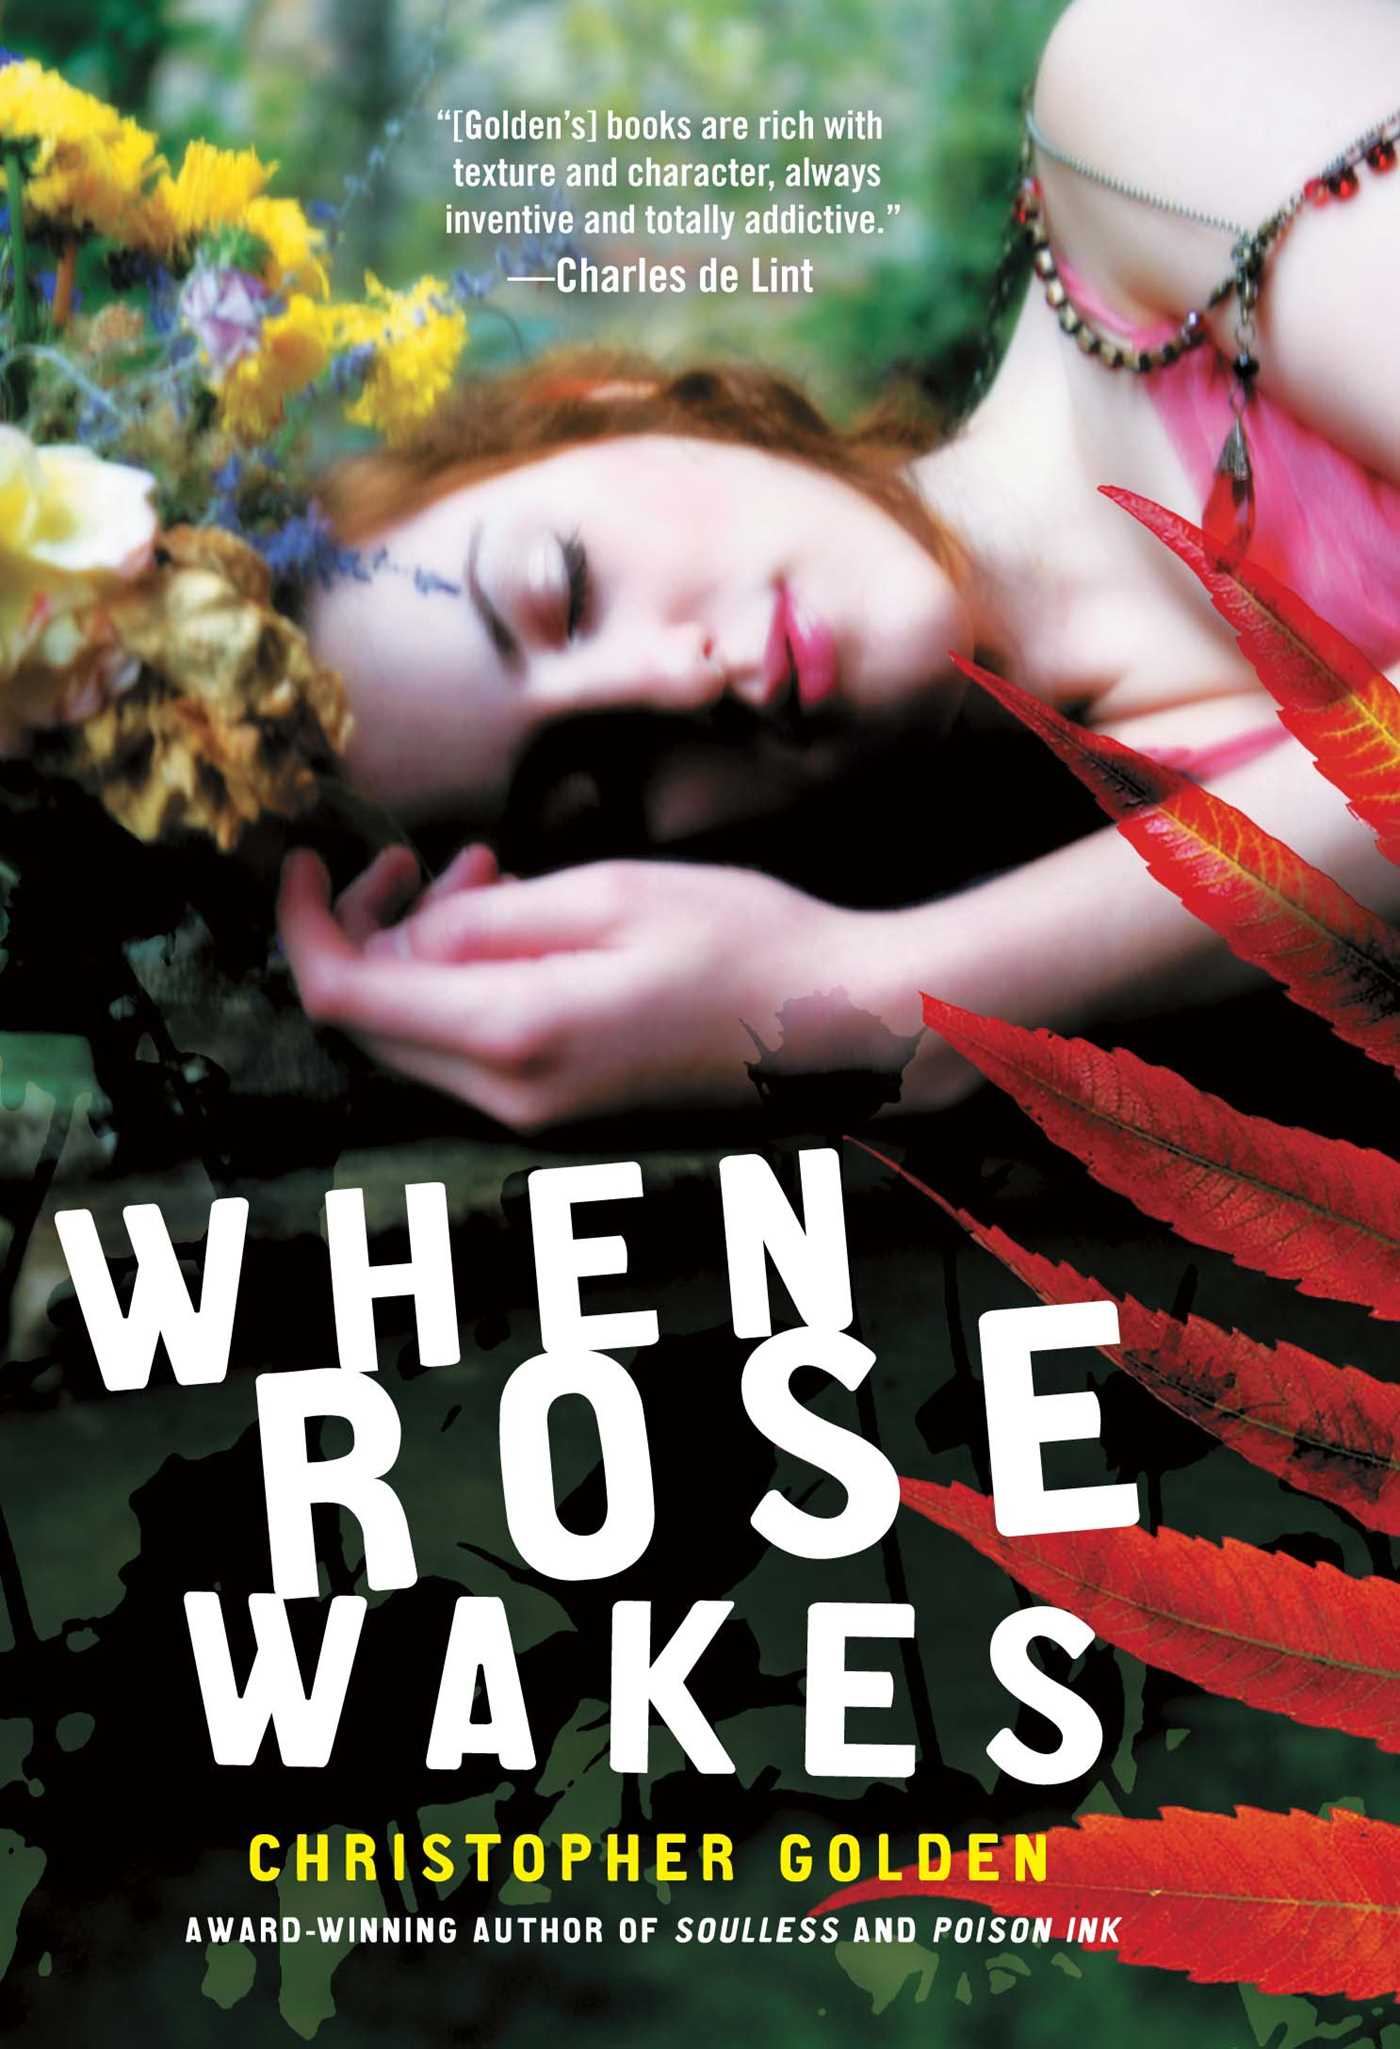 When-rose-wakes-9781439148235_hr